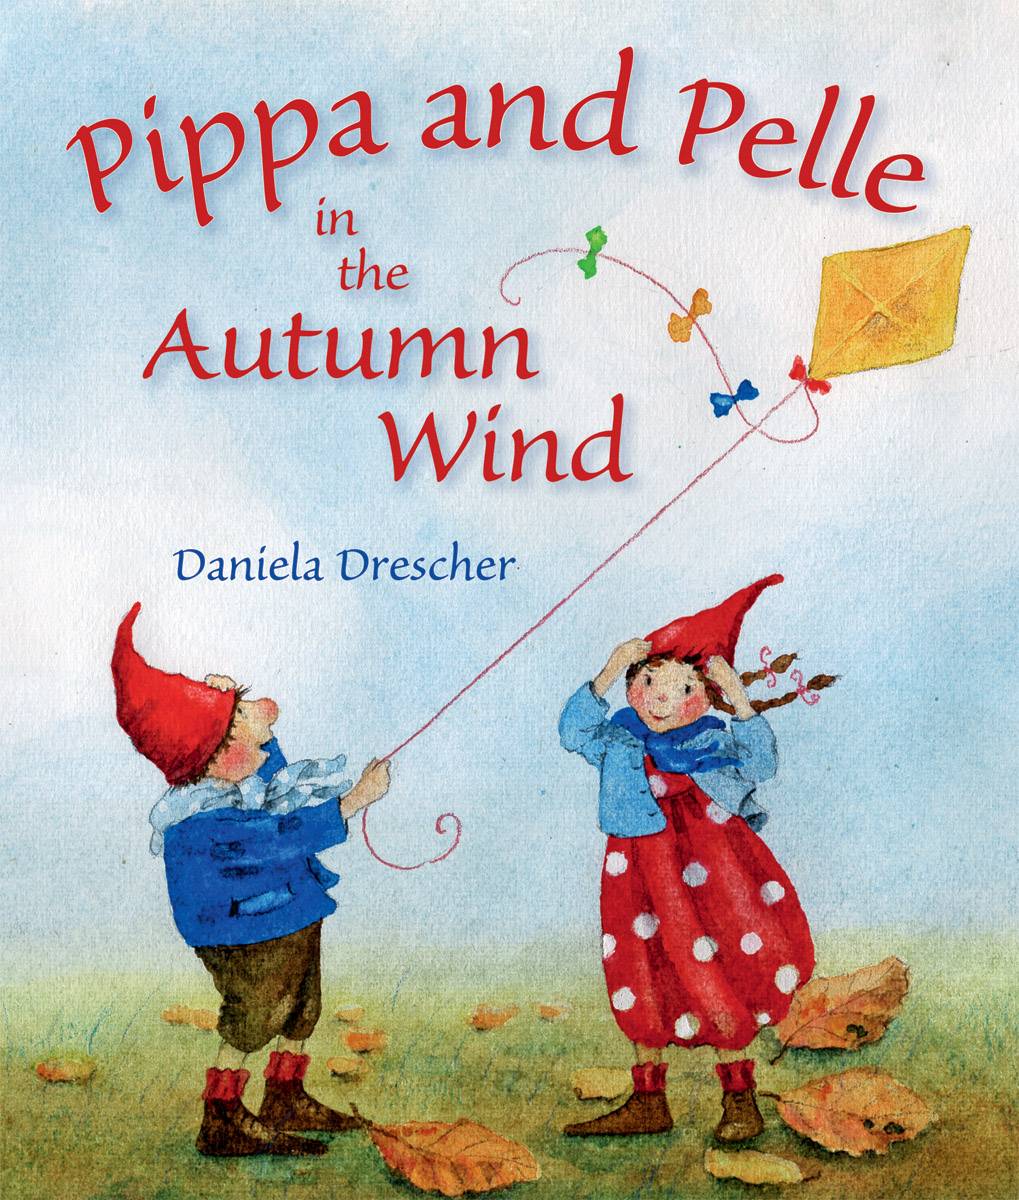 Pippa and Pelle in the Autumn Wind - Floris Books